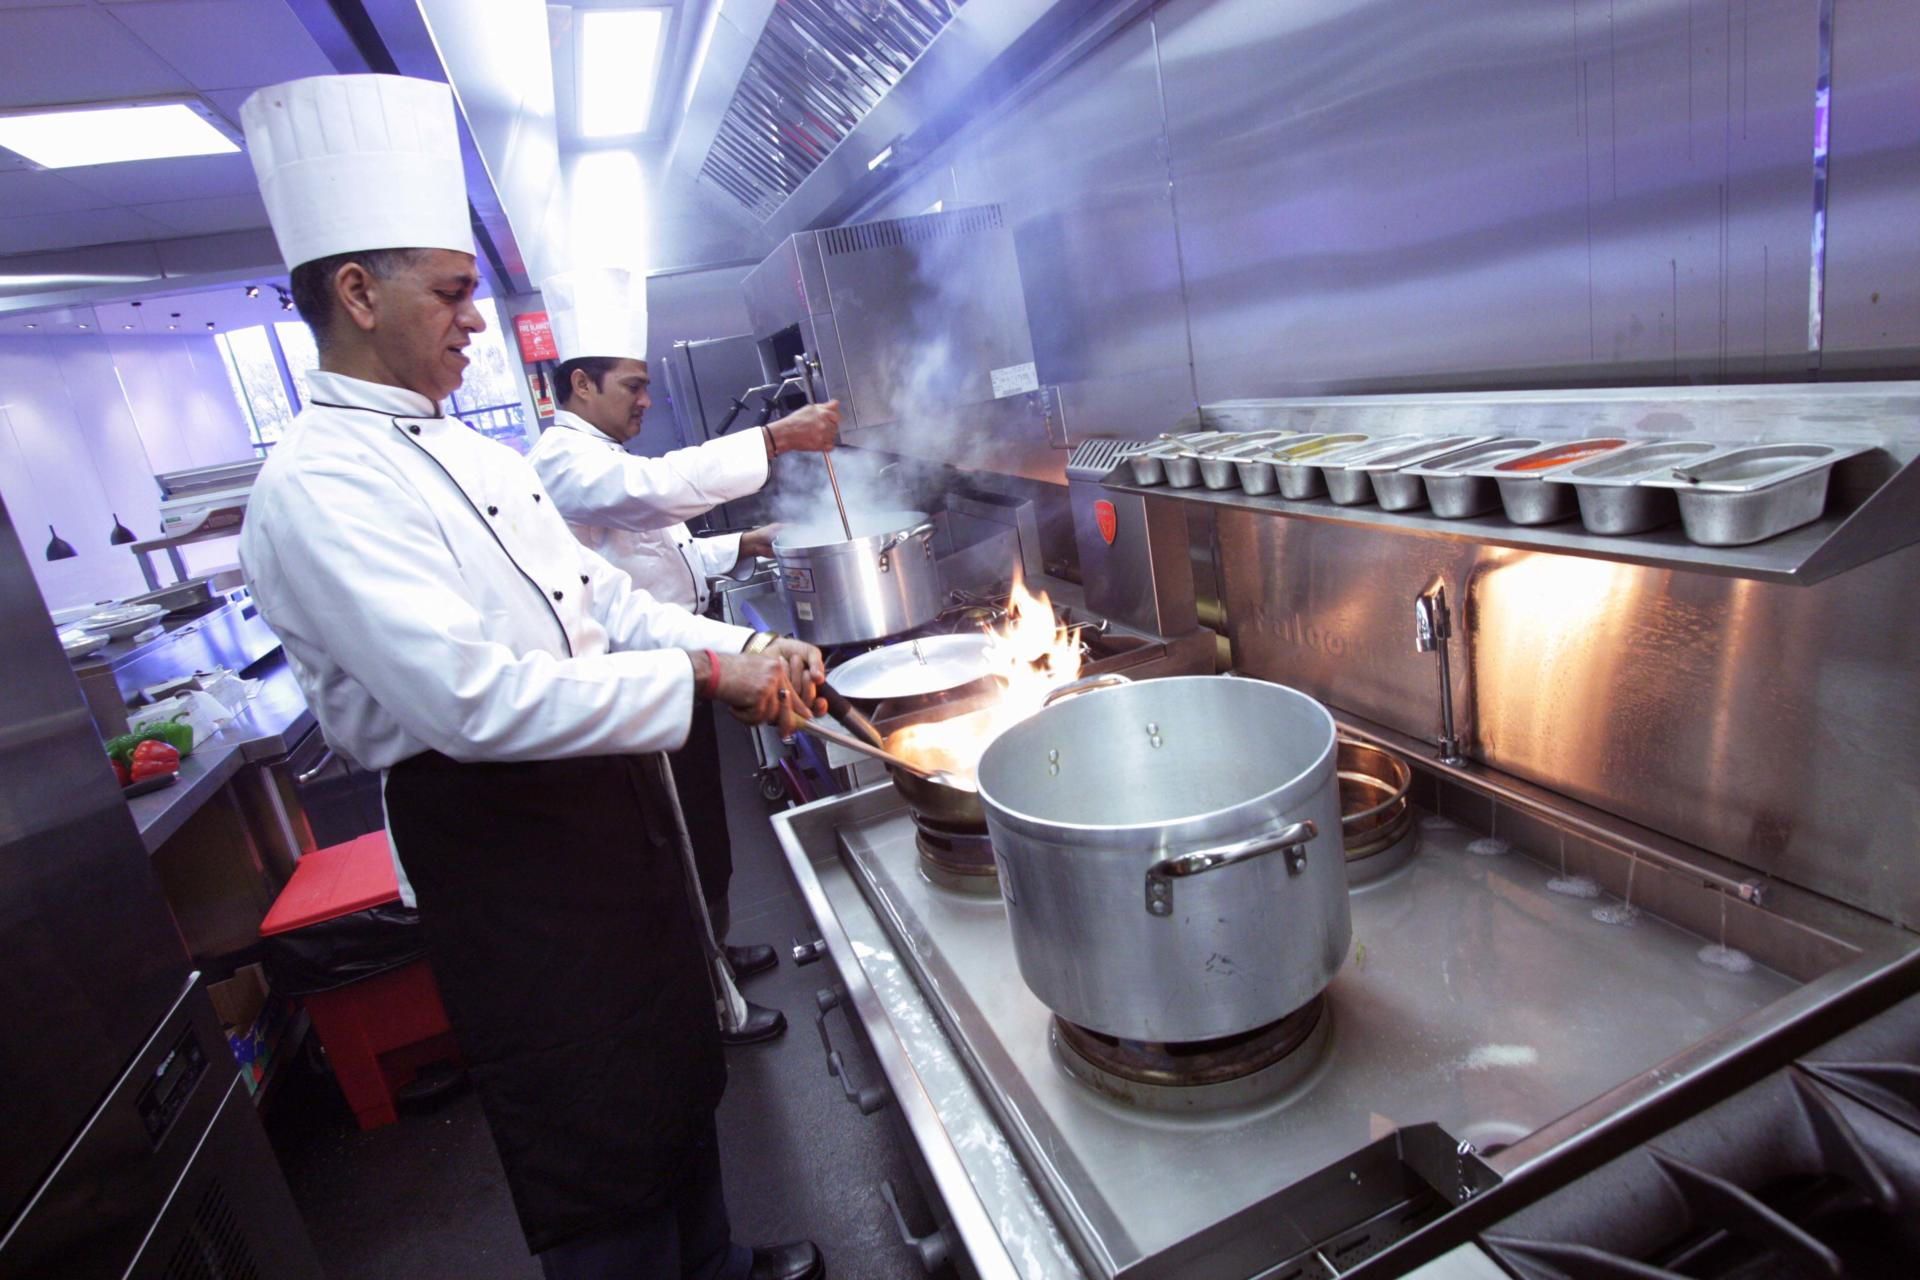 Oojam-Hemel-Hempstead-Indian-restaurant-and-kitchenFabrication-Stainless-Steel-Commercial-Kitchen-spacecatering_7